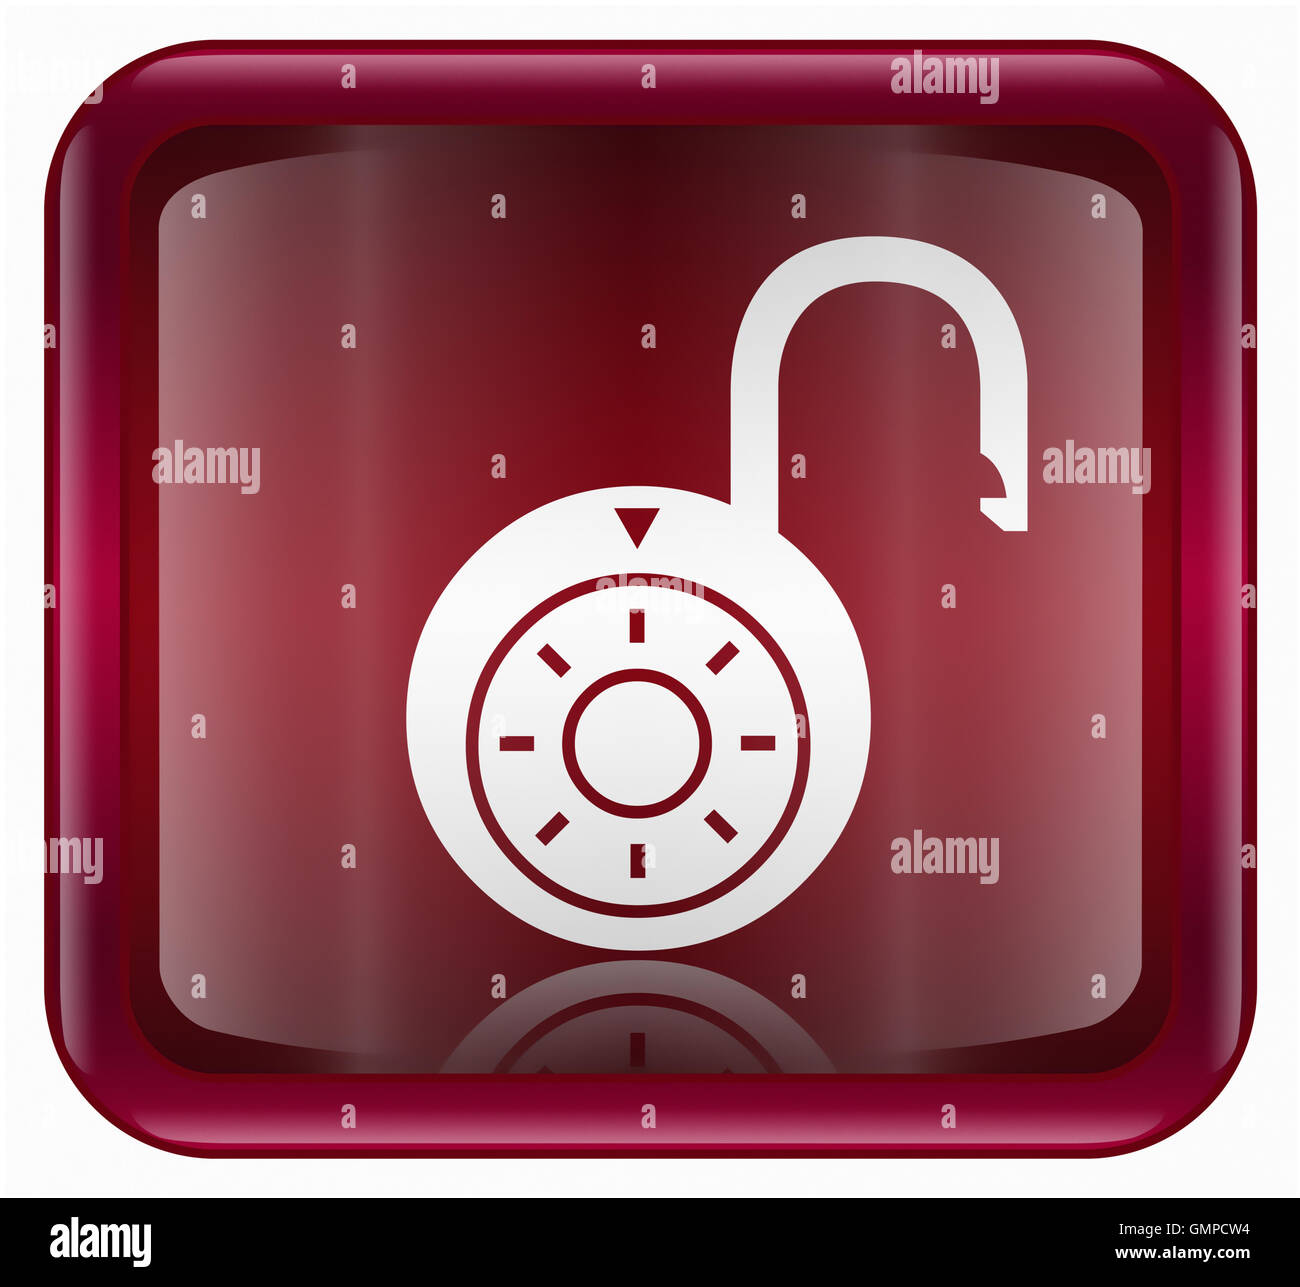 Lock on icon red - Stock Image